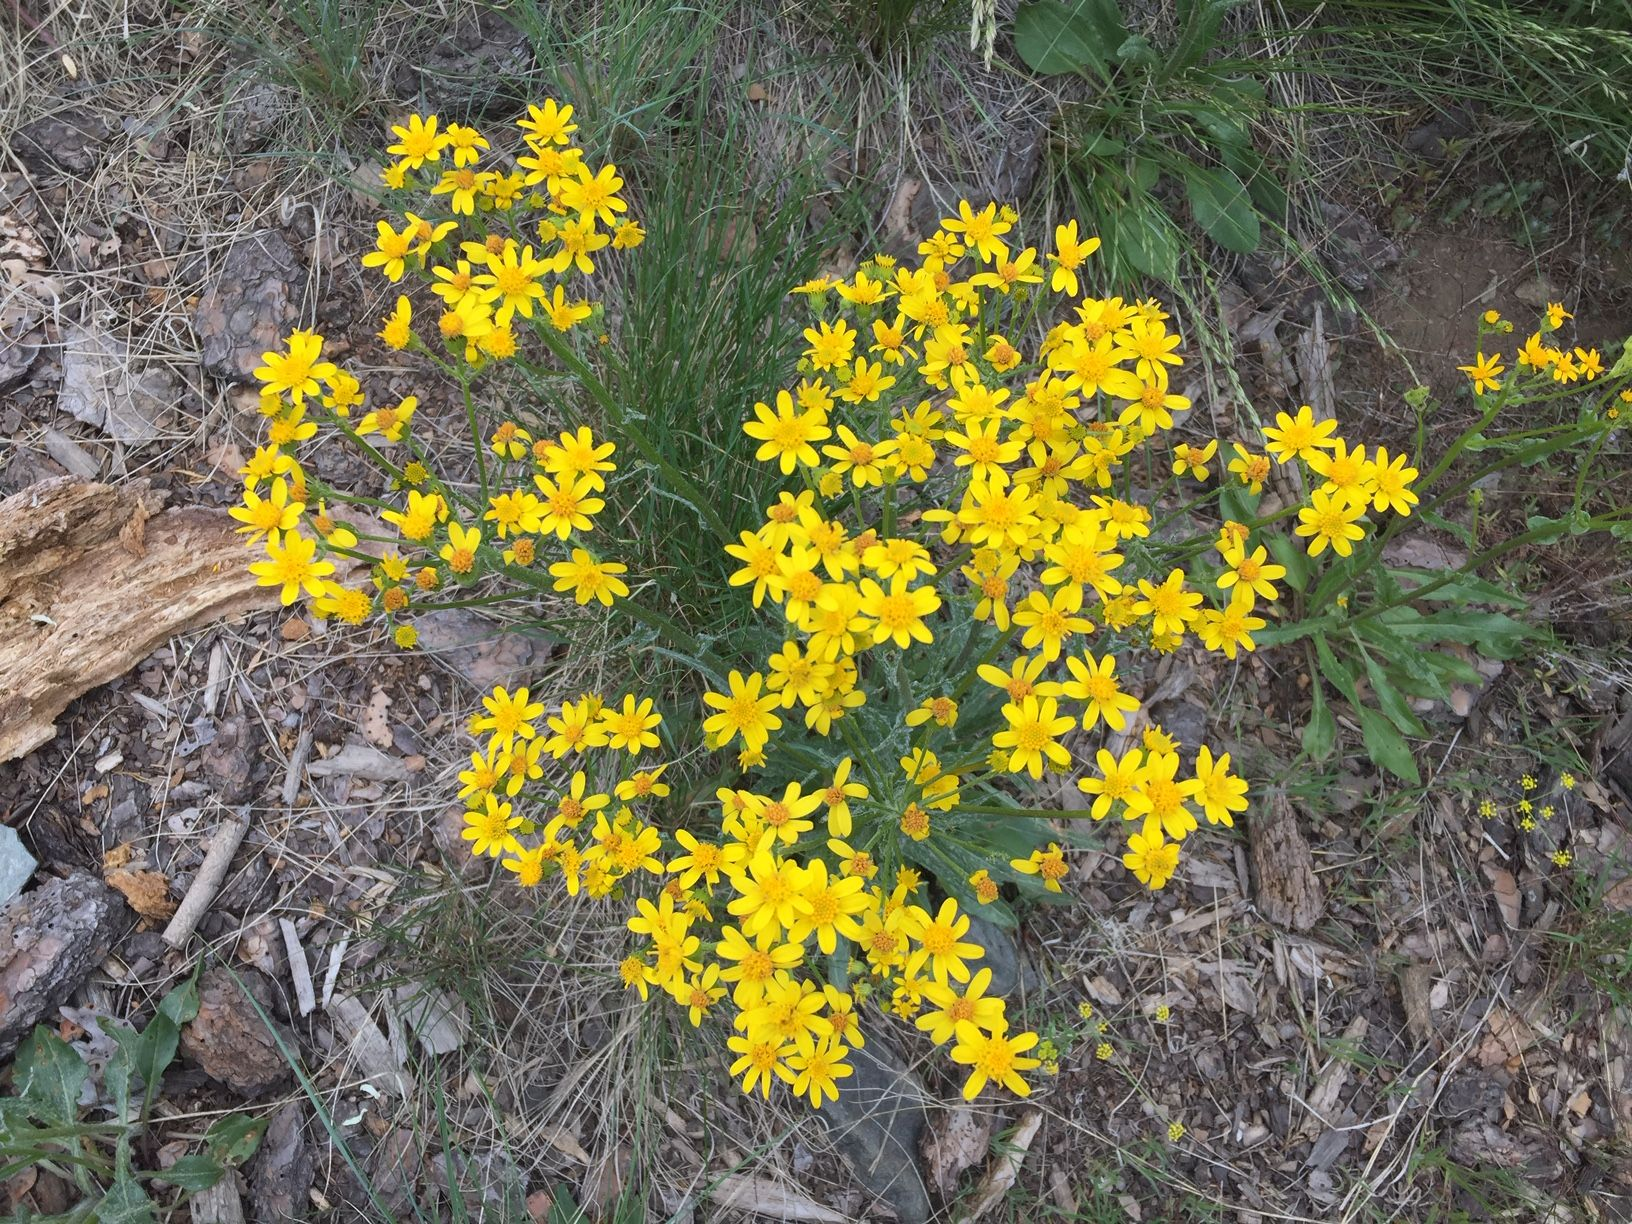 Yellow wildflowers in the Okanagan Valley